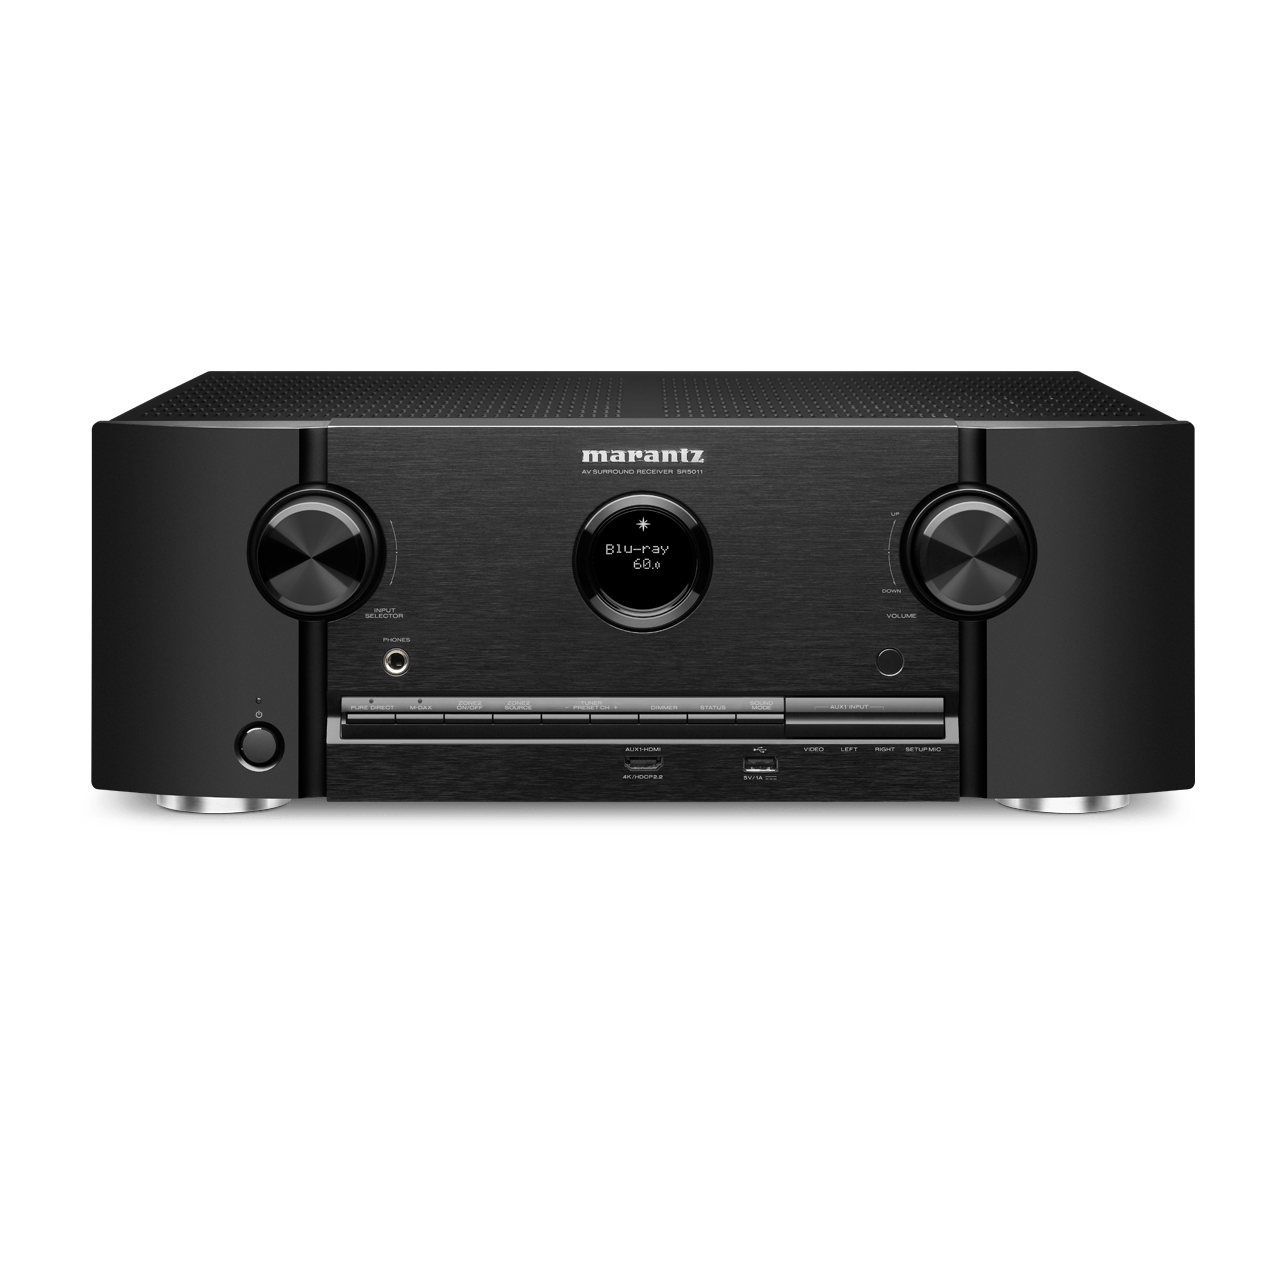 MARANTZ SR5013 NETWORK AV RECEIVER WITH WI-FI AND BLUETOOTH